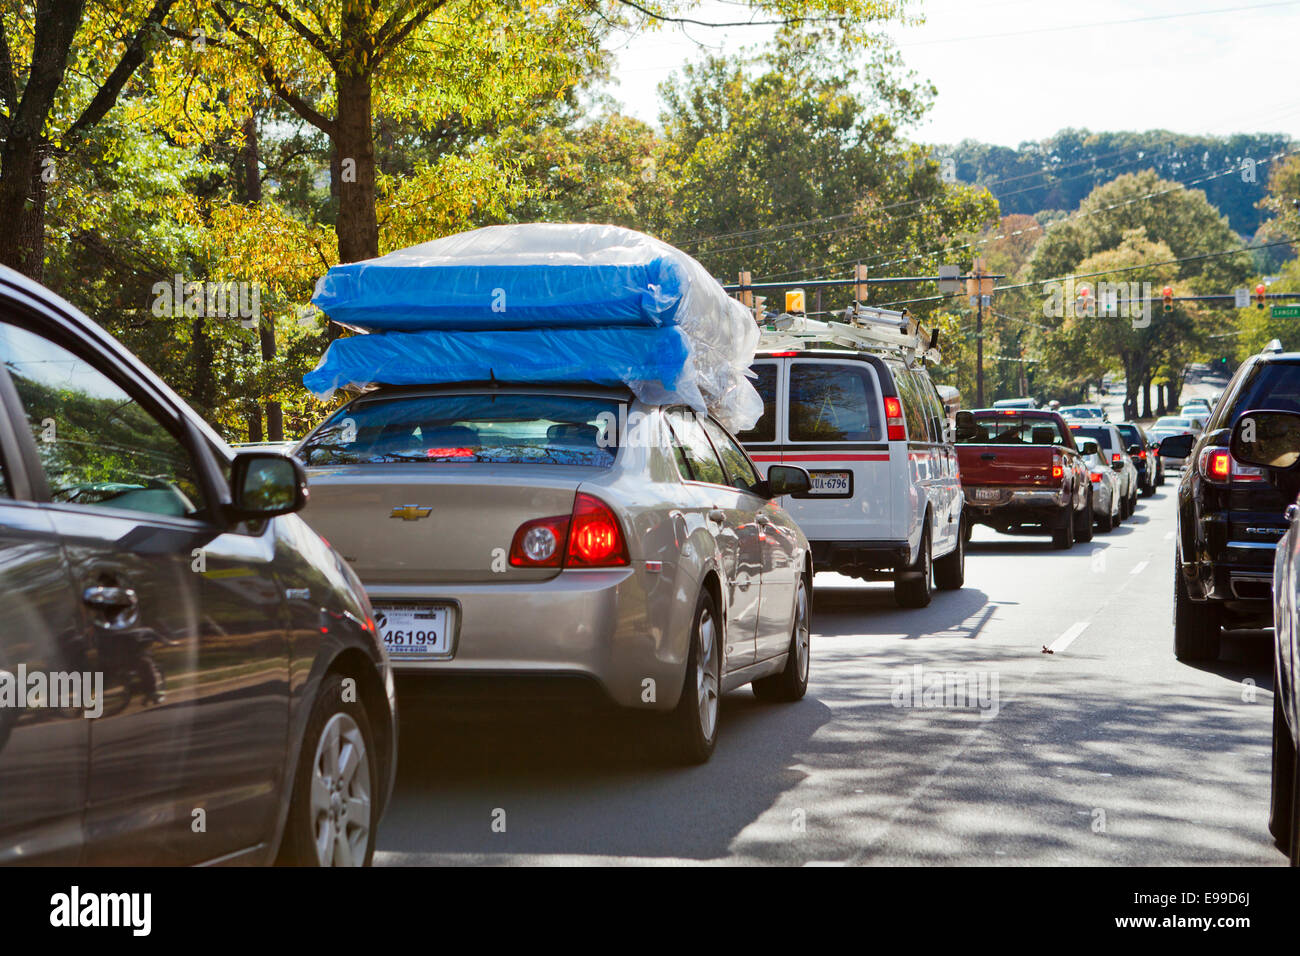 Car with mattresses on top - USA - Stock Image